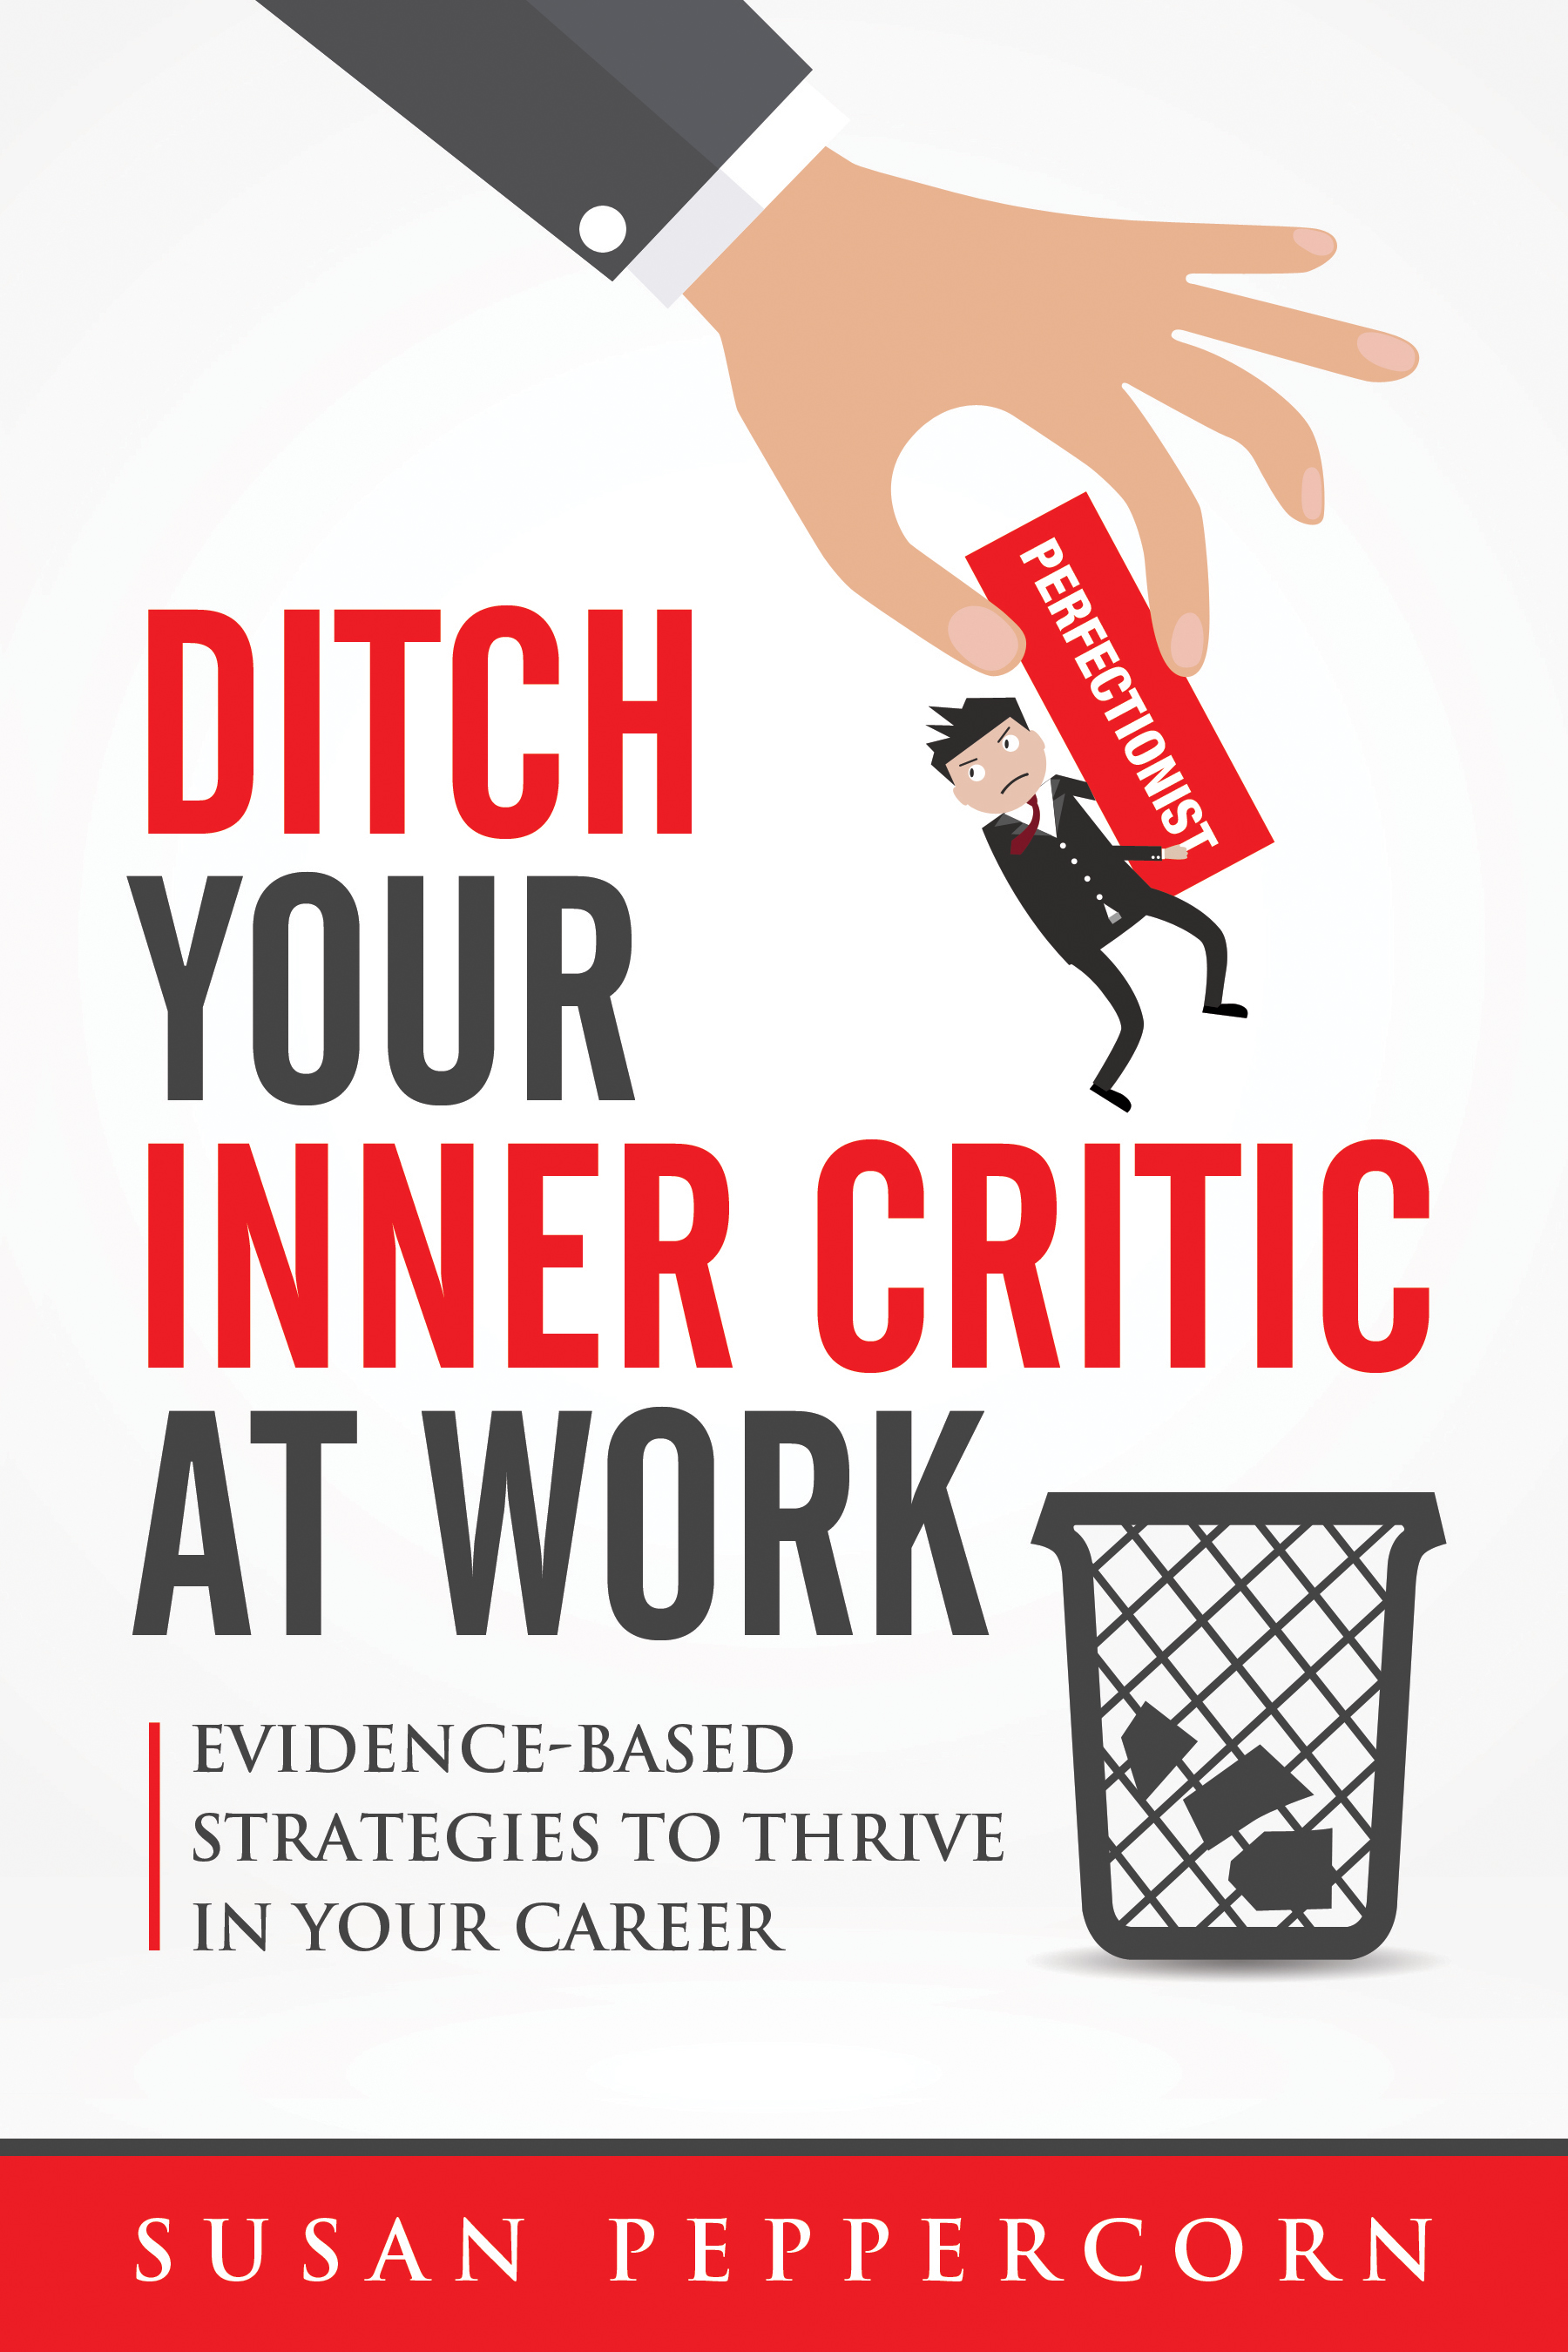 Ditch-Your-Inner-Critic-at-Work-v3-FRONT-hi-res-final.jpg